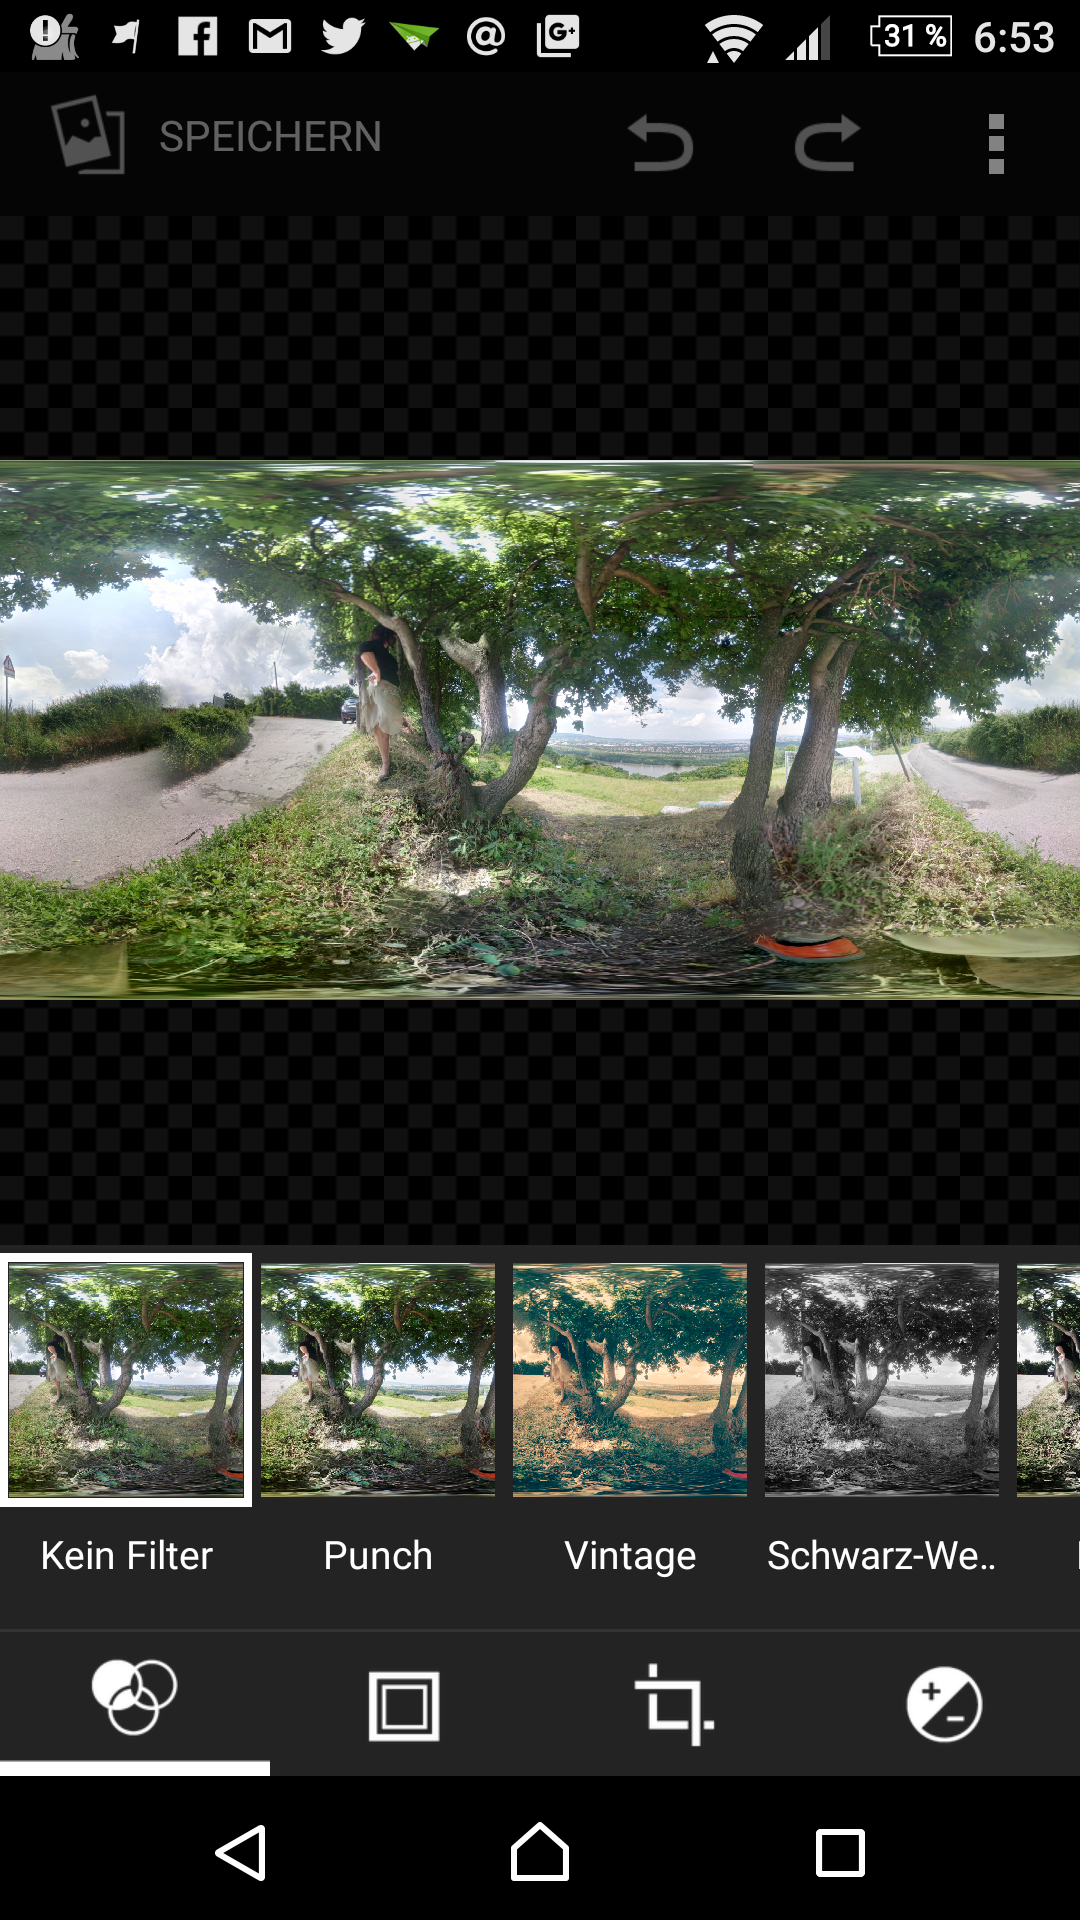 360-Panorama-Image-Editing